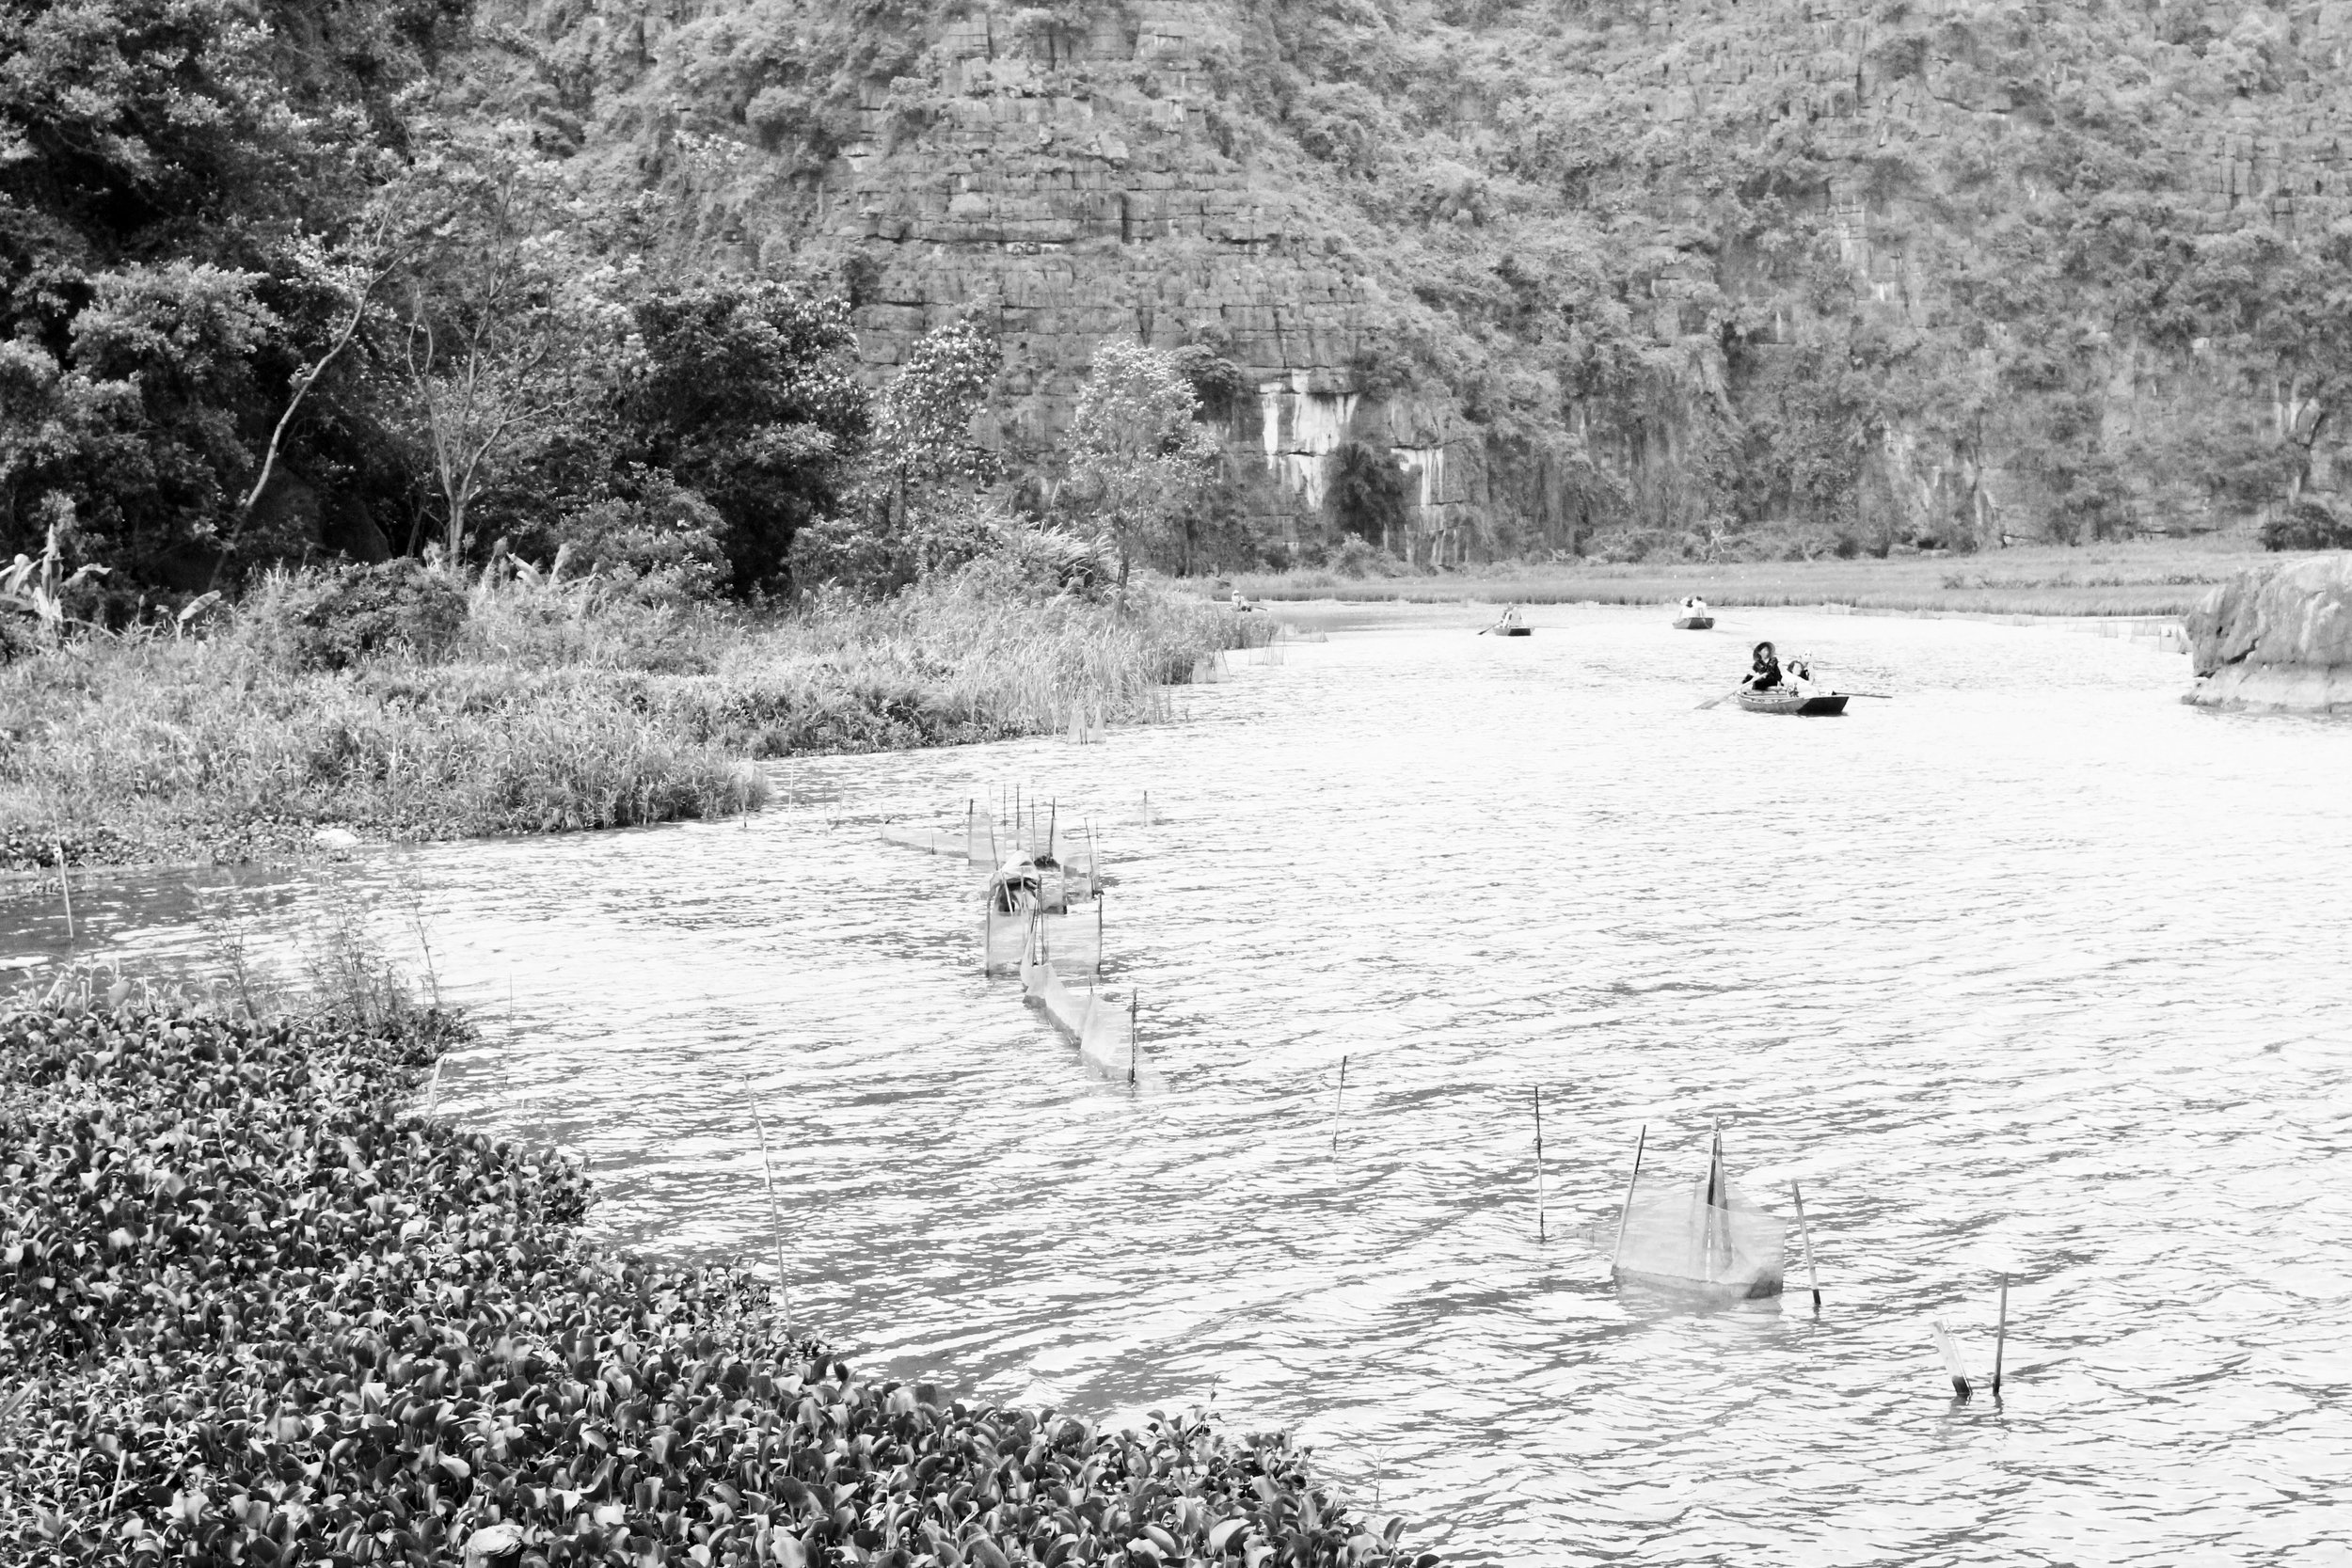 Vietnamese locals paddle with their feet #nbd